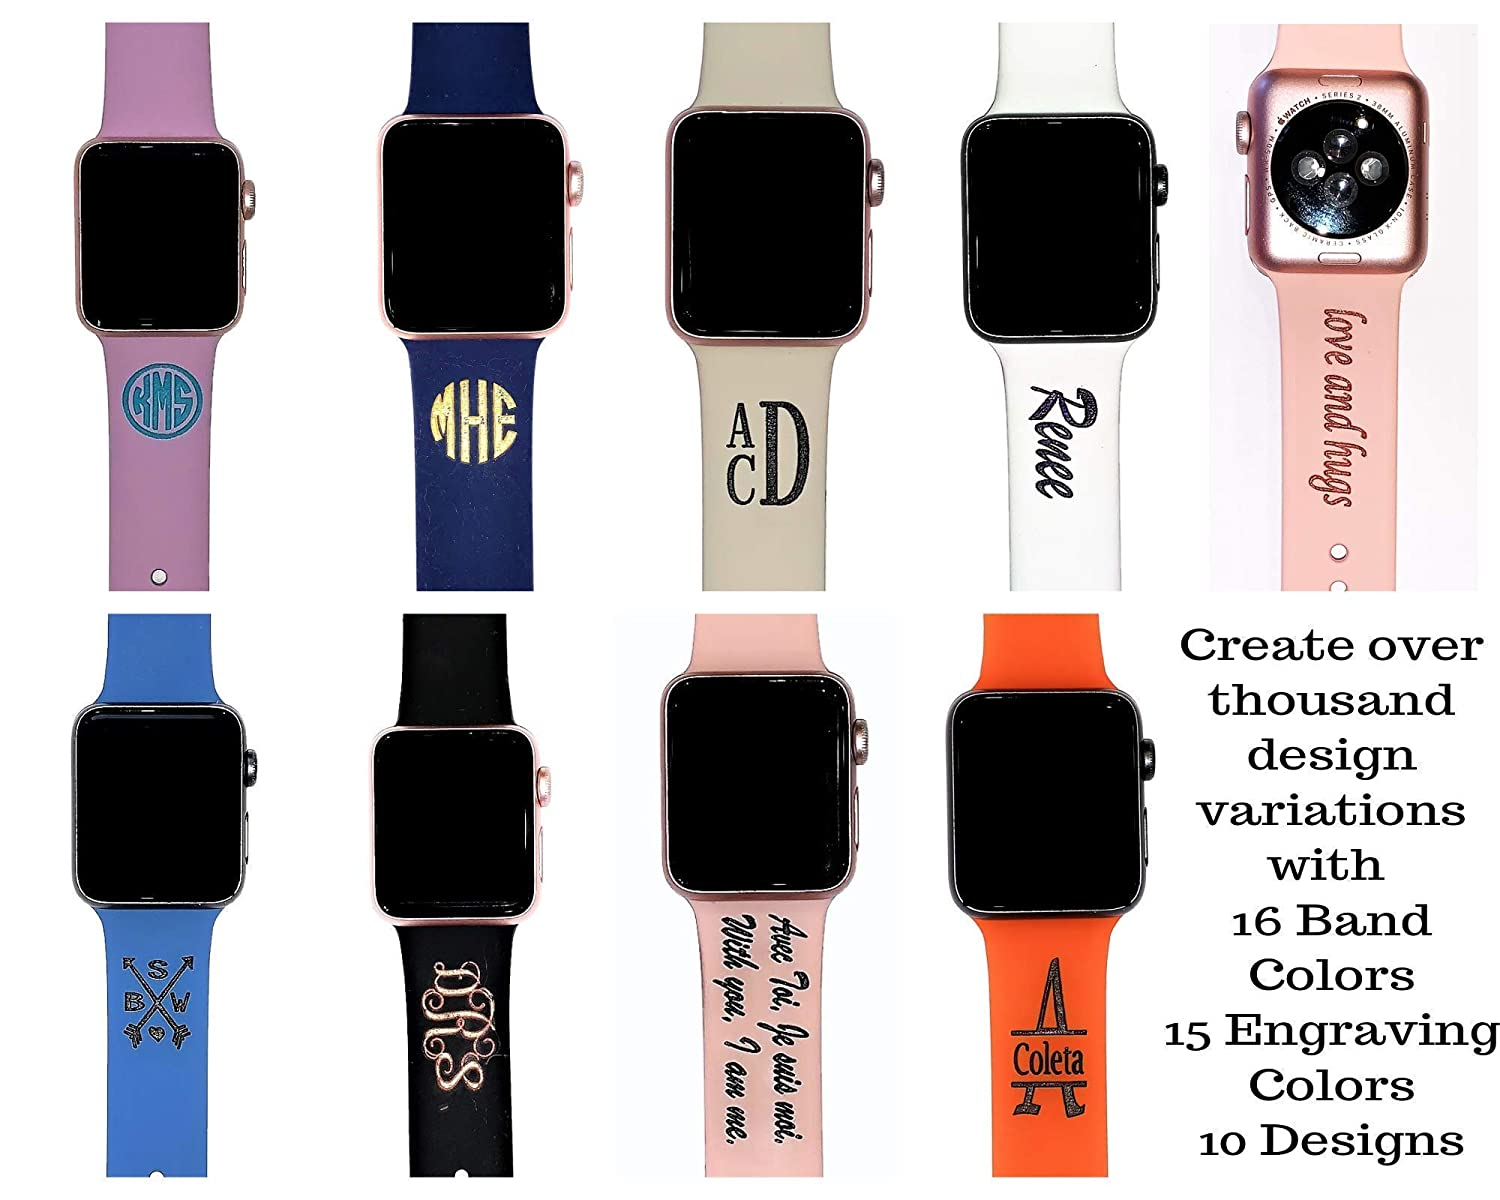 Silicone Watch Band Custom Silicone Watch Band Personalized Silicone Band Compatible With Apple Watch 38mm 40mm 42mm 44mm Monogram Watch Band